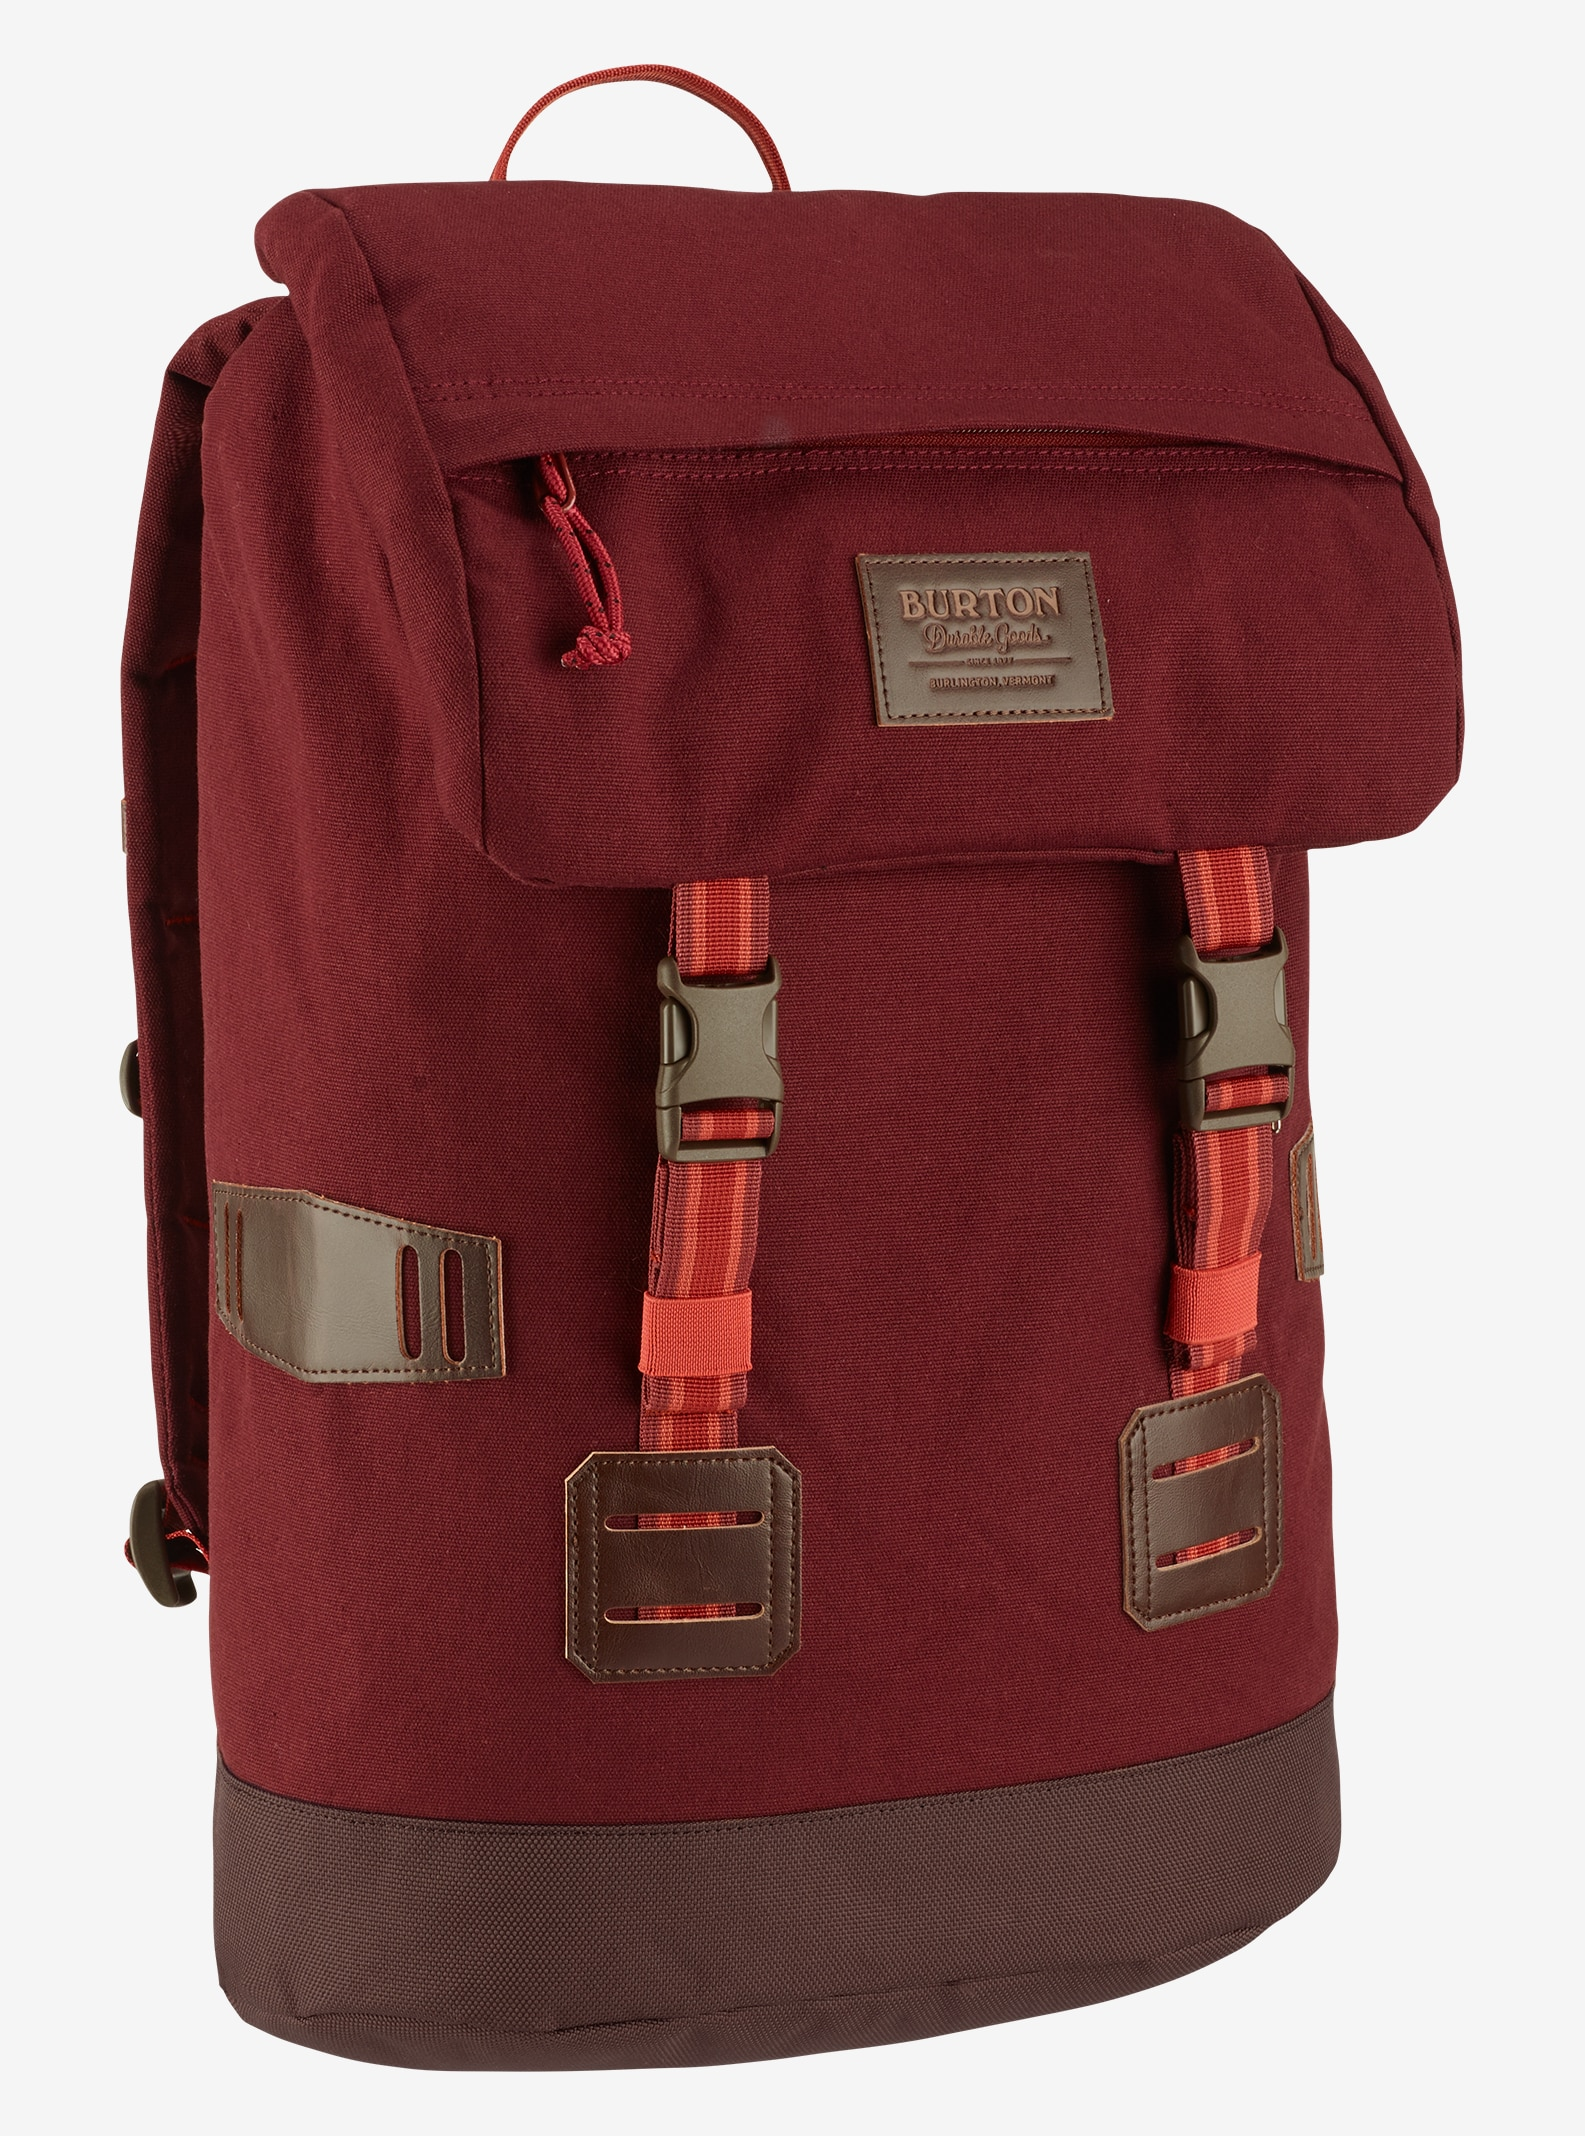 Burton Tinder Backpack shown in Fired Brick Triple Rip Cordura®